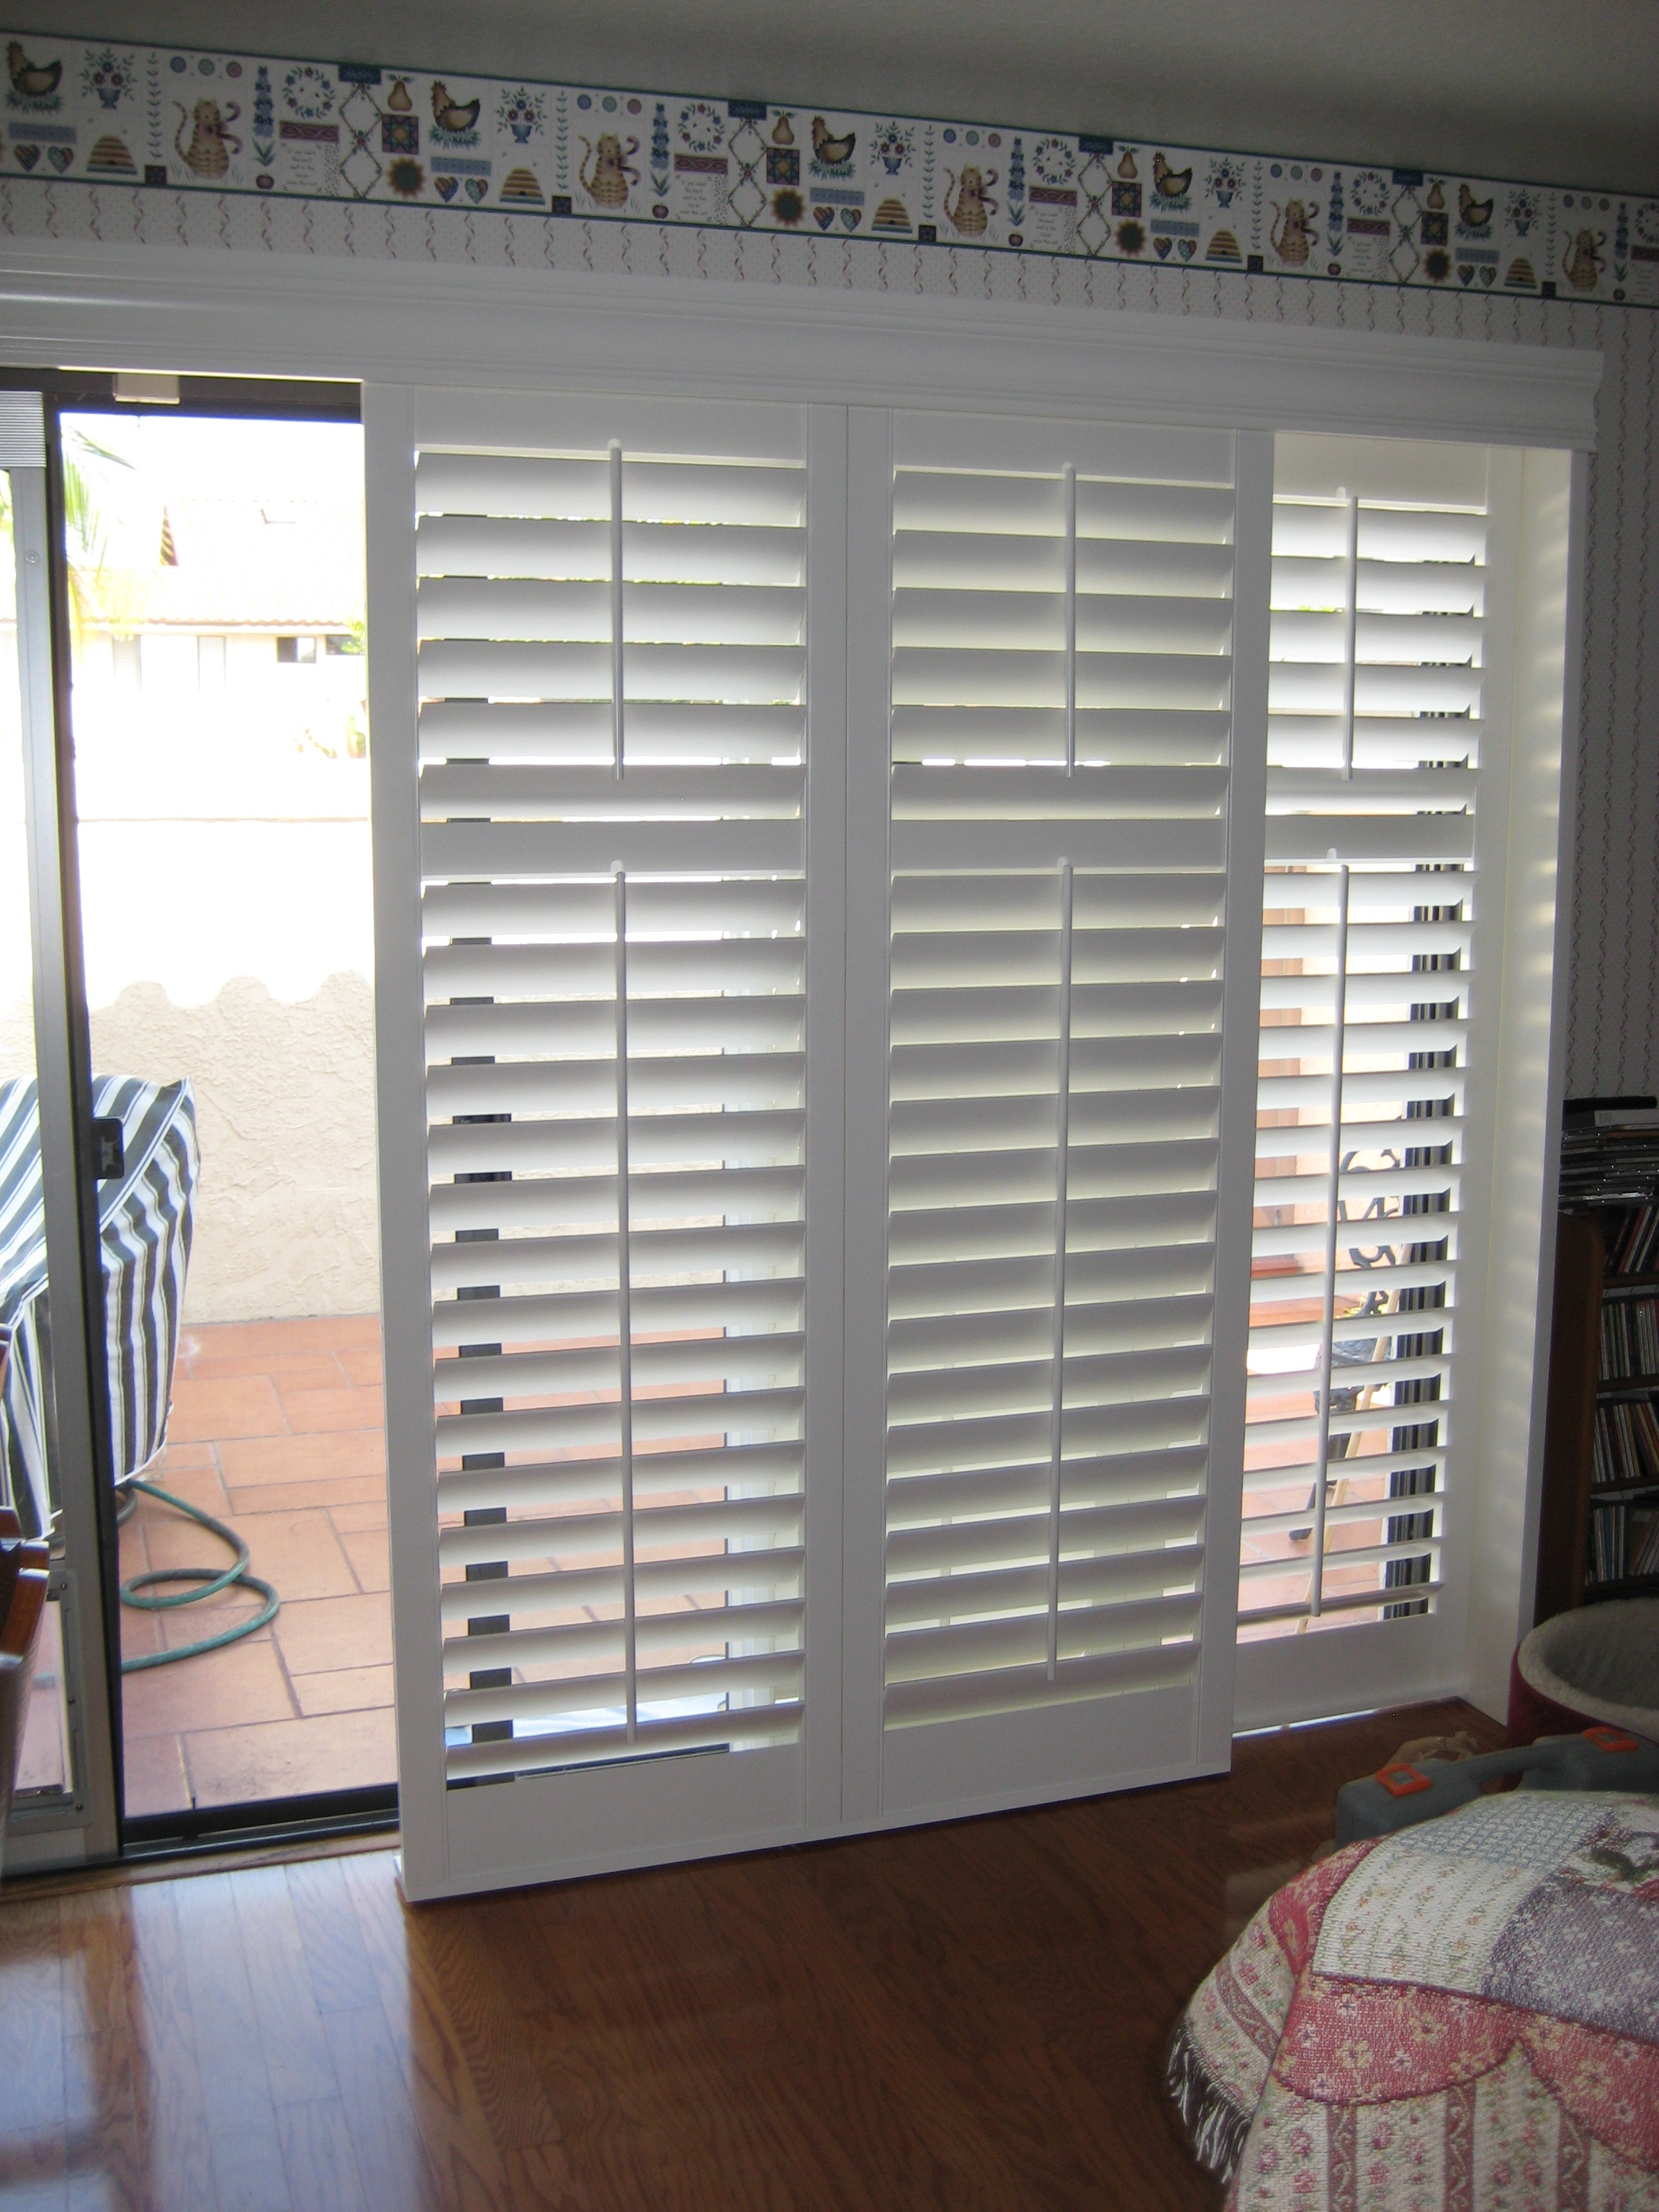 Security Shutters For Sliding Glass Doors2304 X 3072